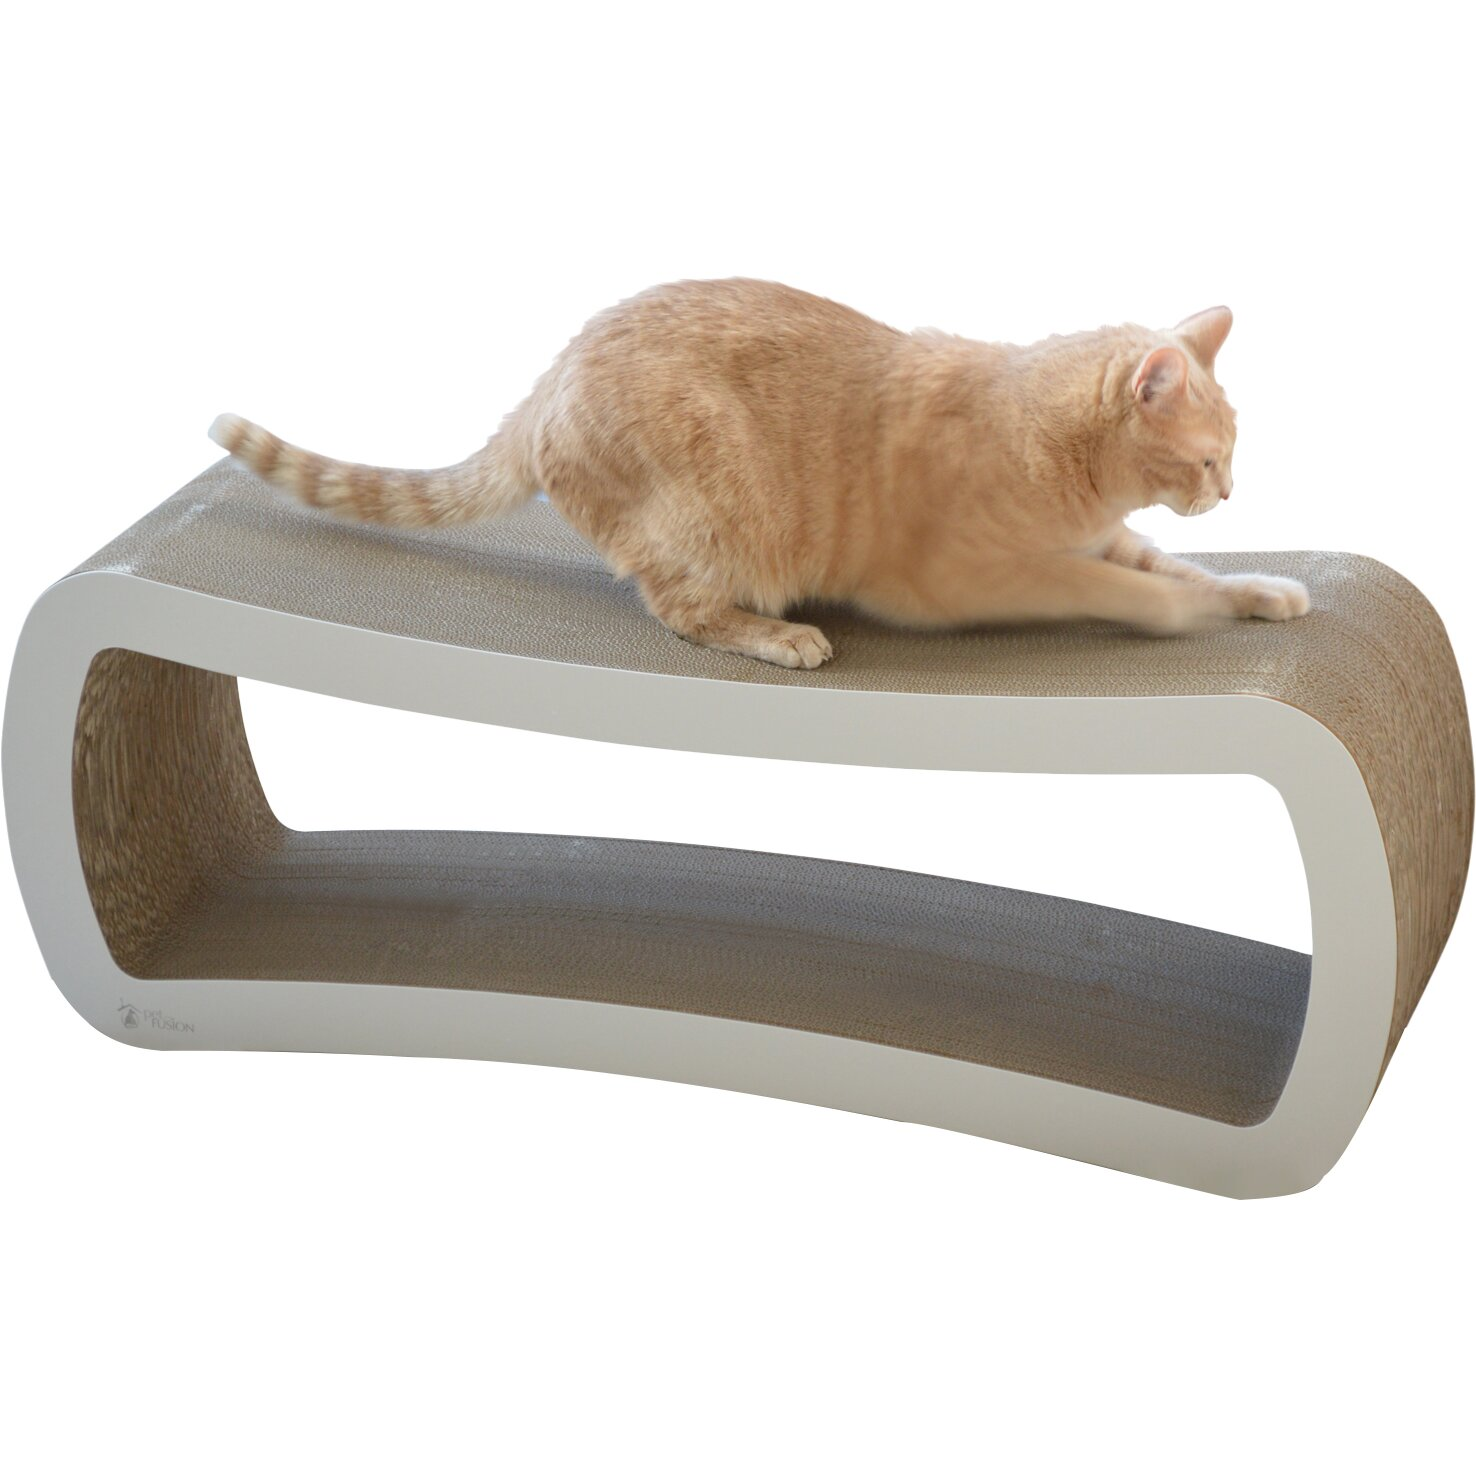 555561304011074509 besides PetFusion Jumbo Cat Scratcher Lounge And Bed PETF1027 as well Best Choice Products Cat Scratcher Kitten Lounge Pet Scratching Kitty Bed Toy moreover 1183211 Cool Stuff For Cats besides 83246293084175262. on petfusion cat scratcher lounge